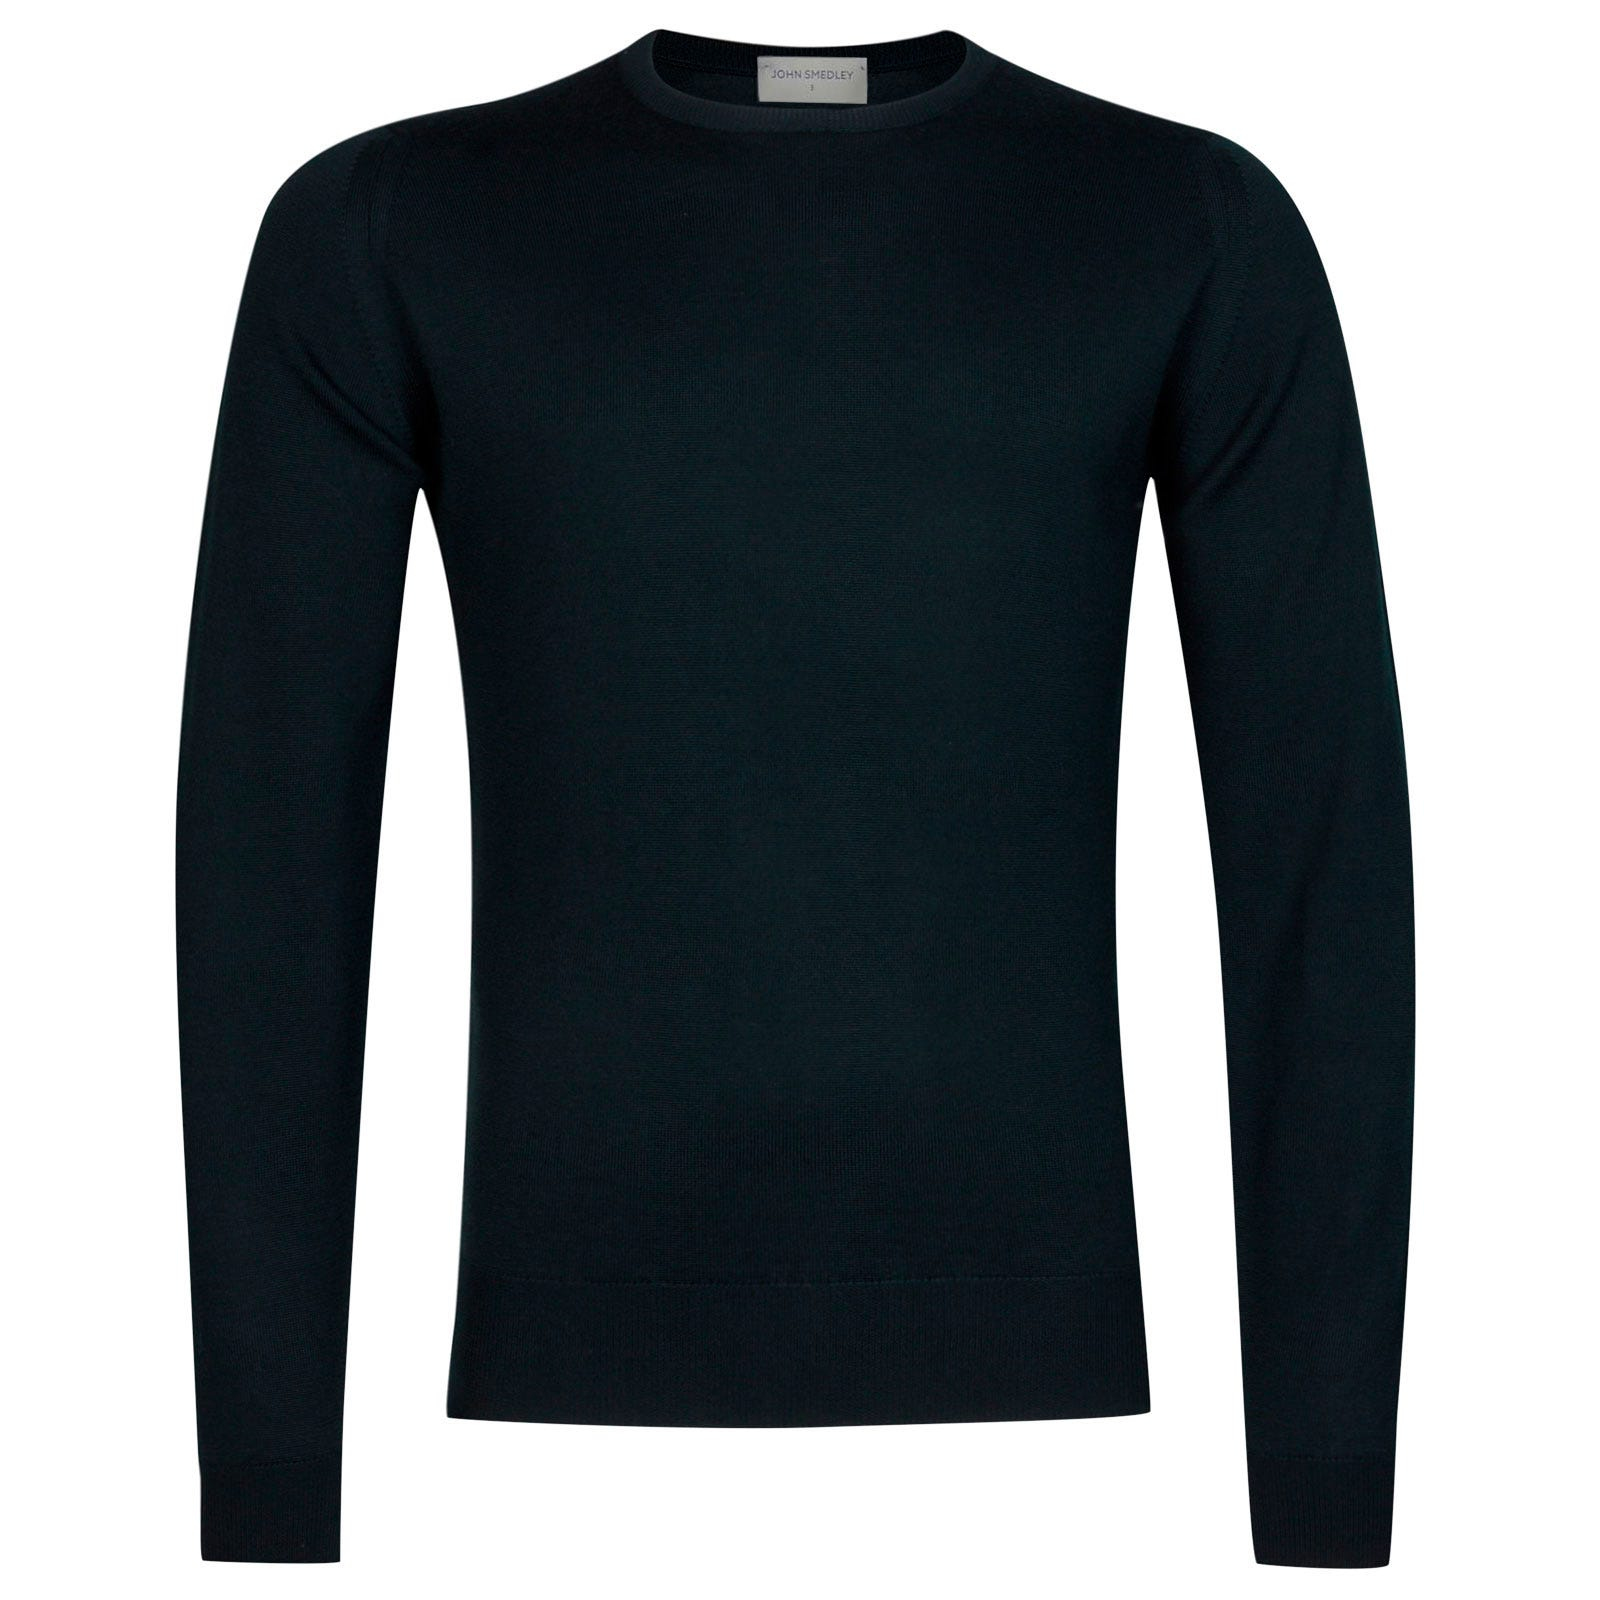 John Smedley farhill Merino Wool Pullover in Racing Green-XL